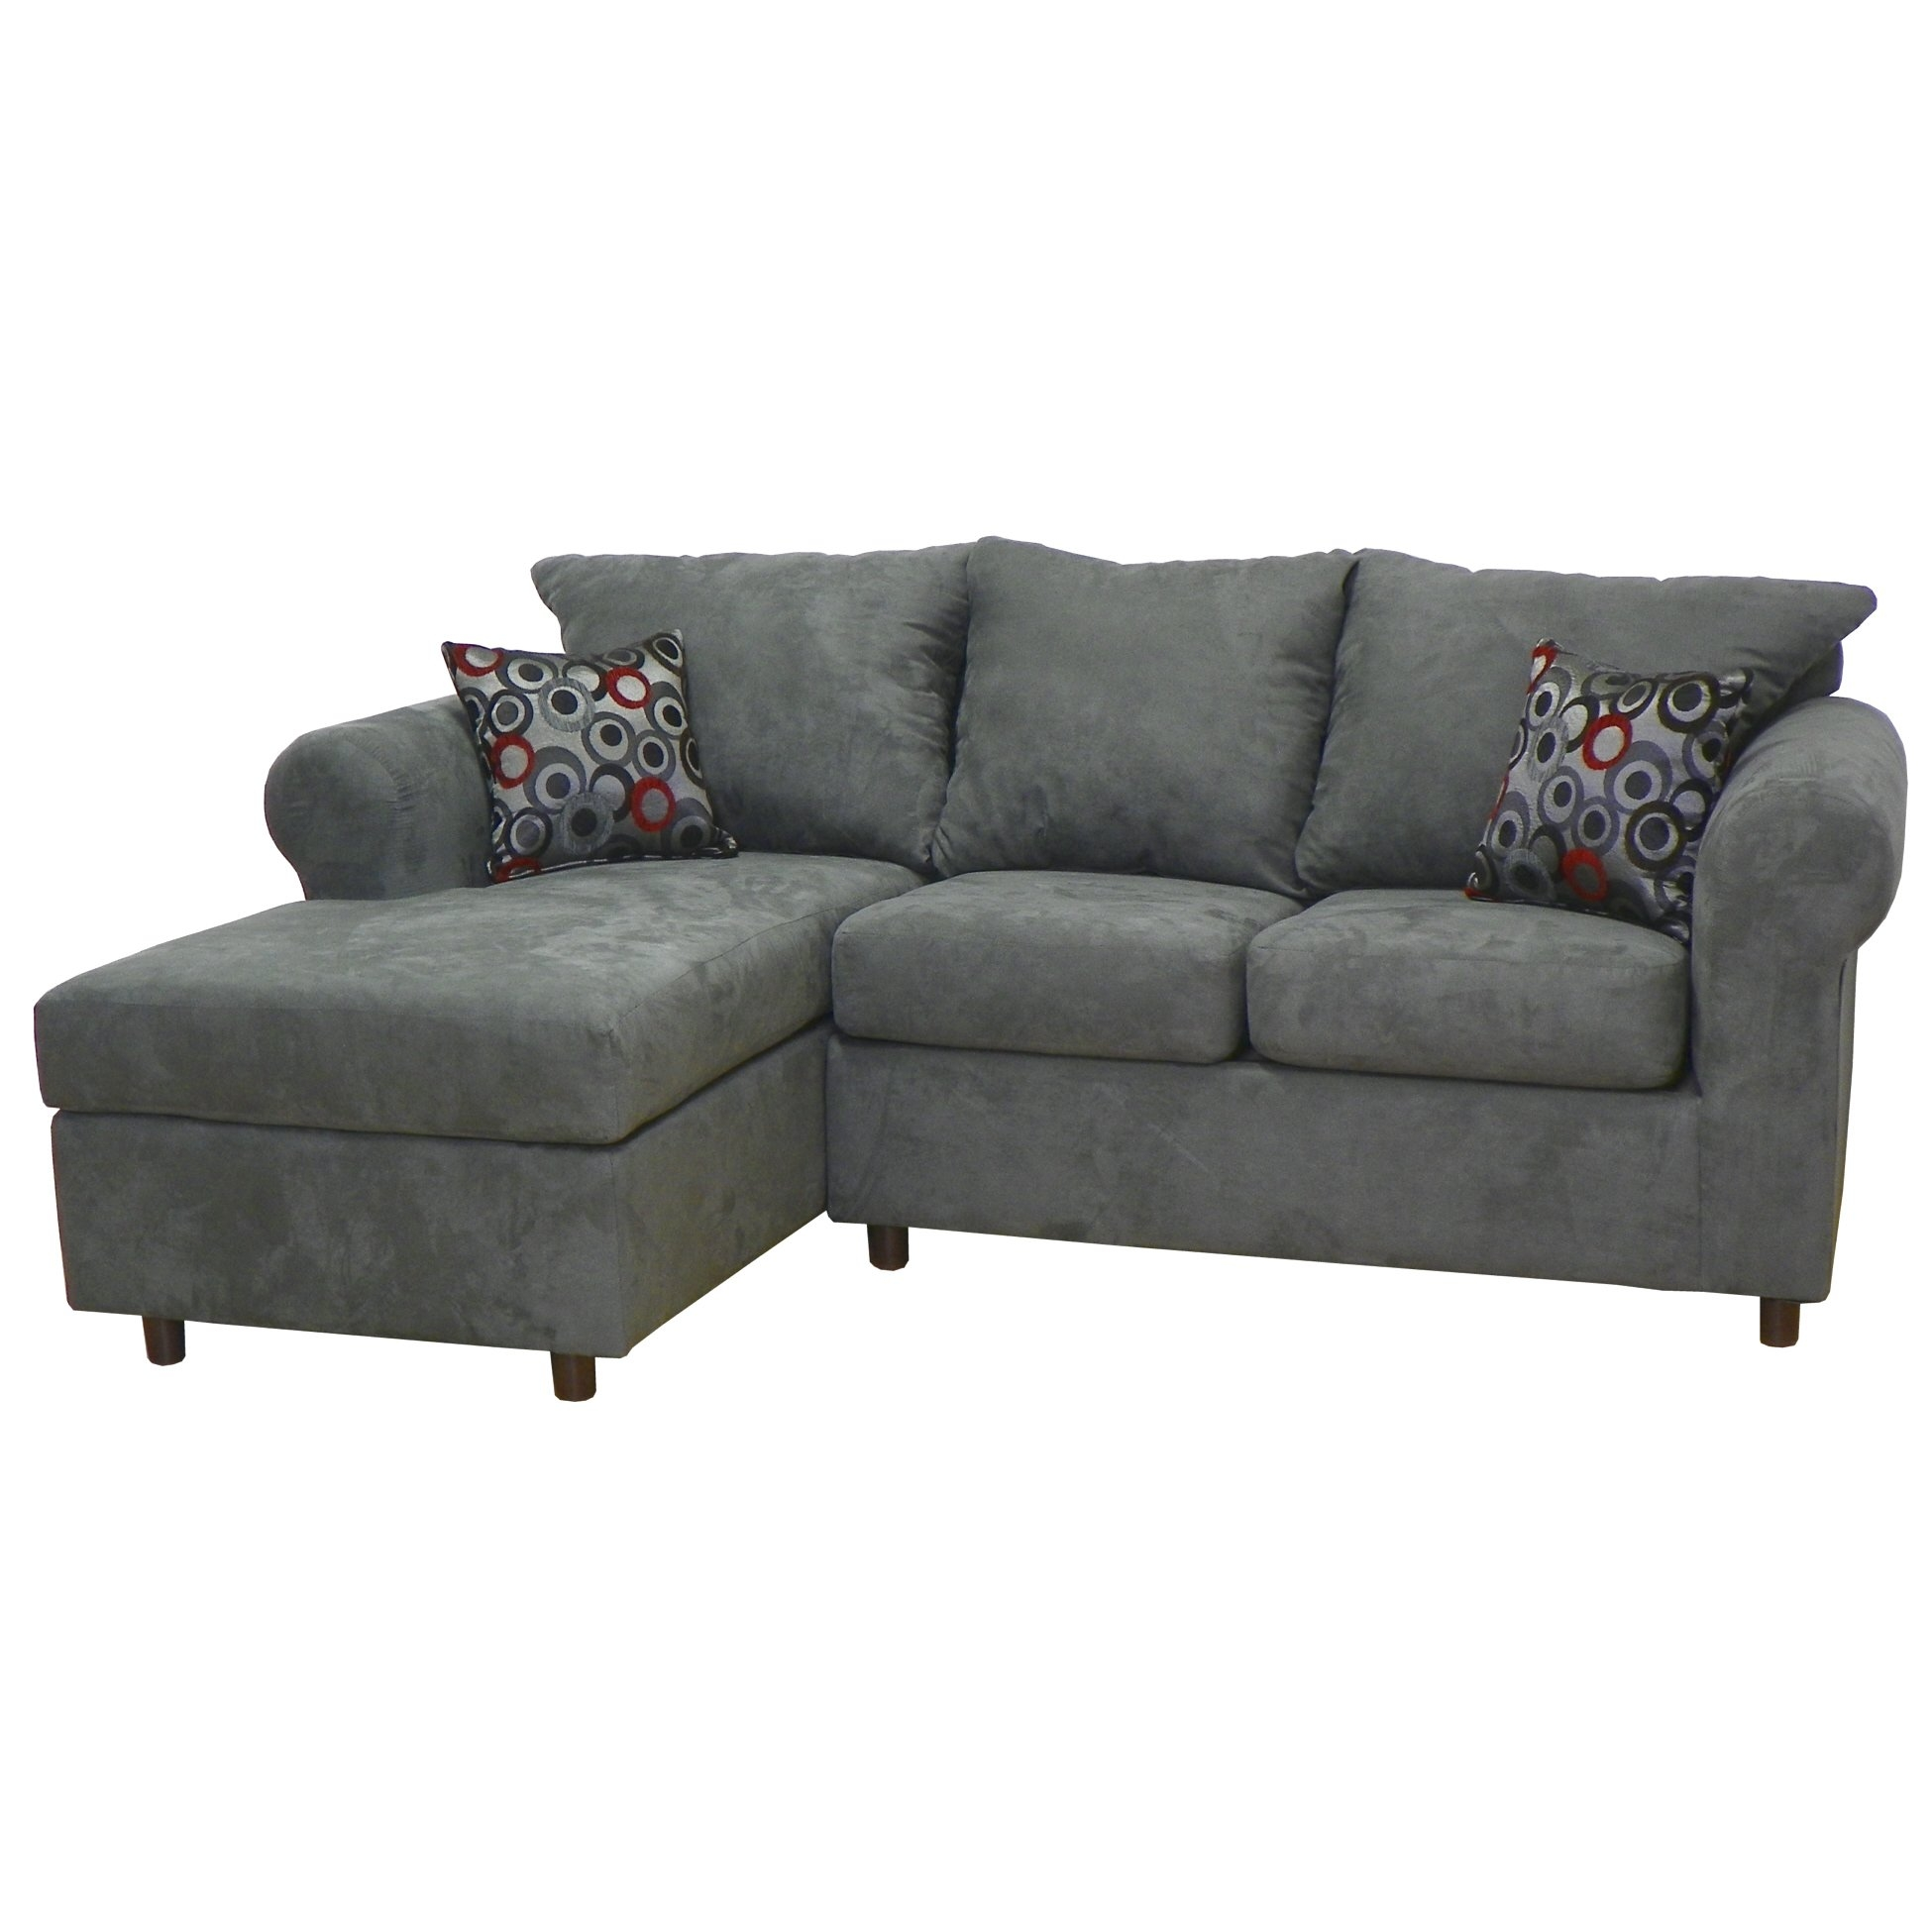 Featured Image of Small Sectional Sofa